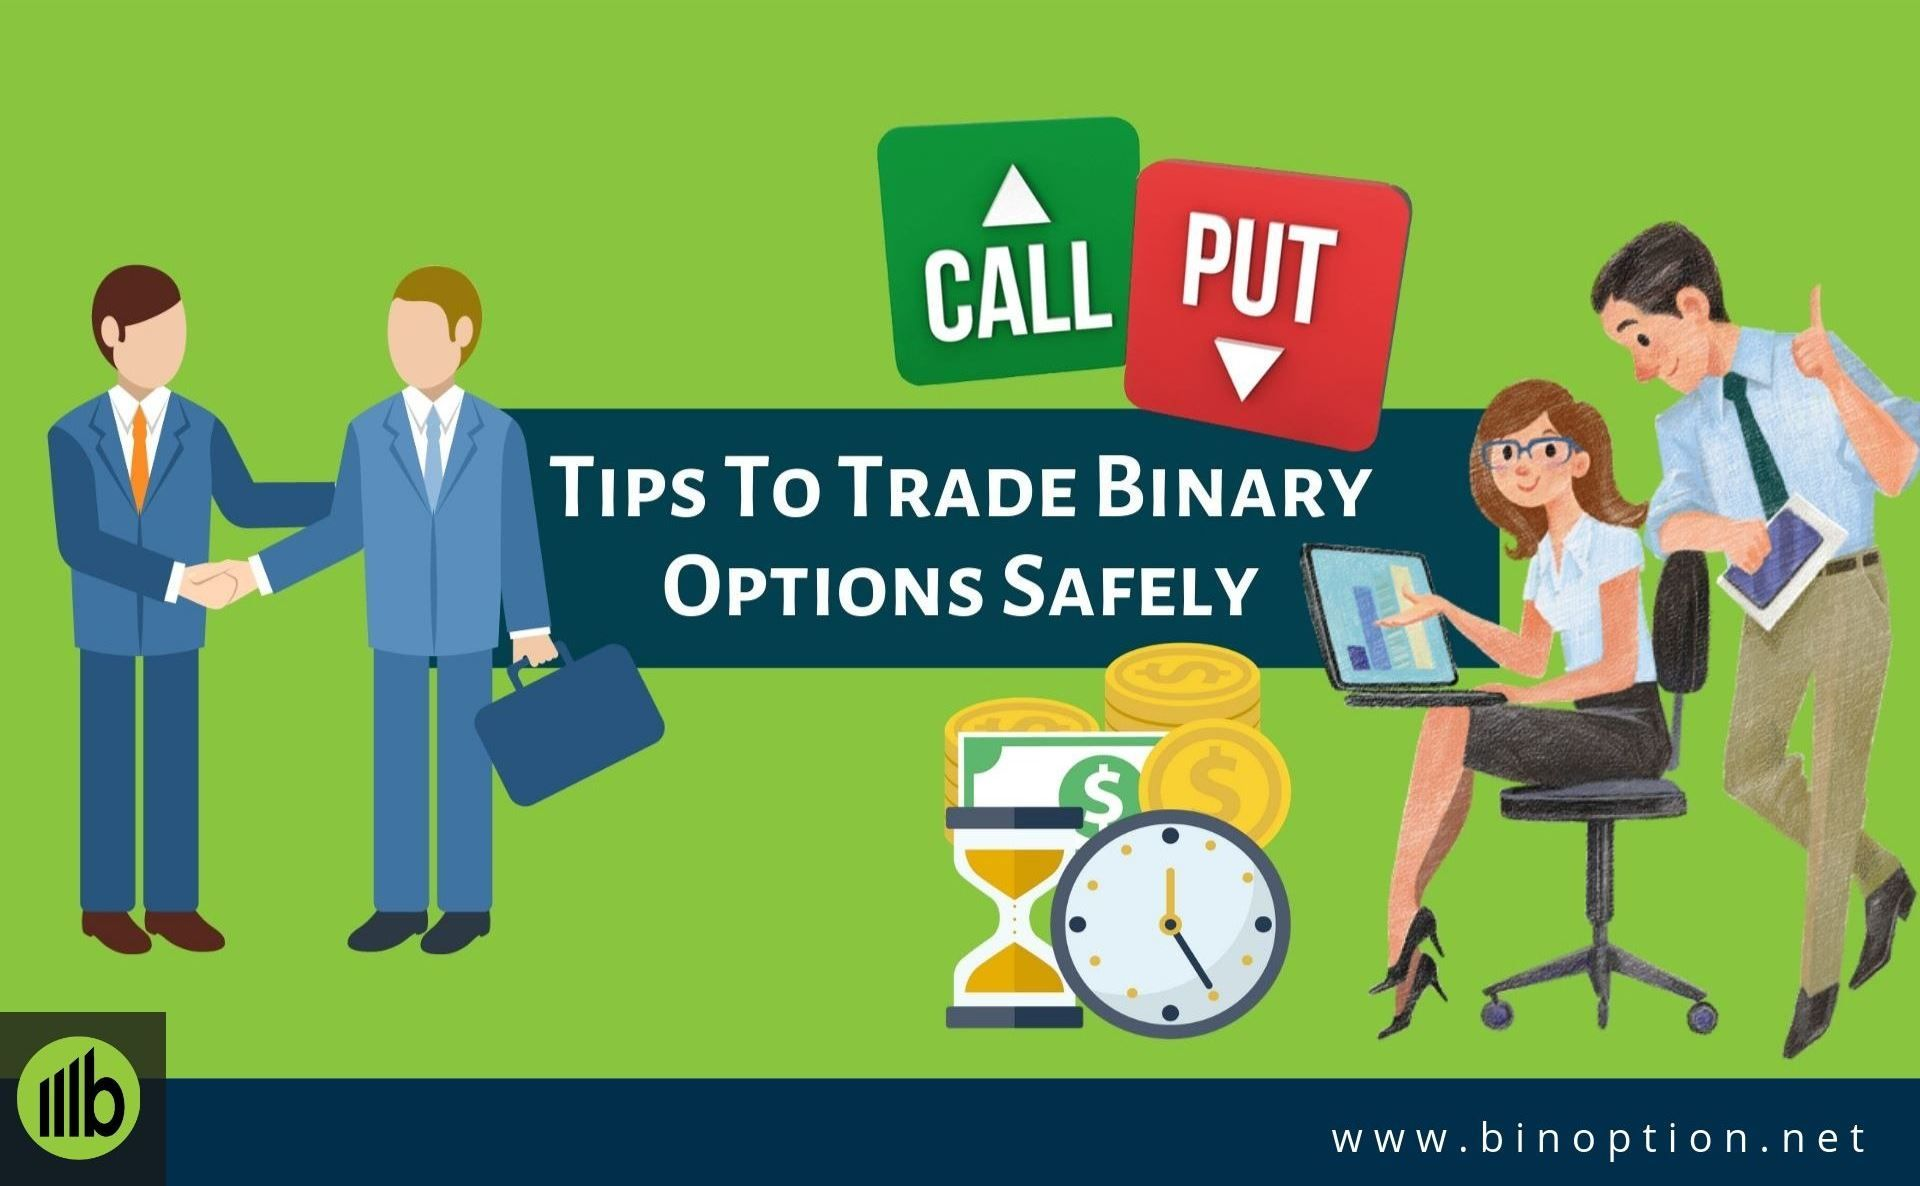 Tips To Trade Binary Options Safely